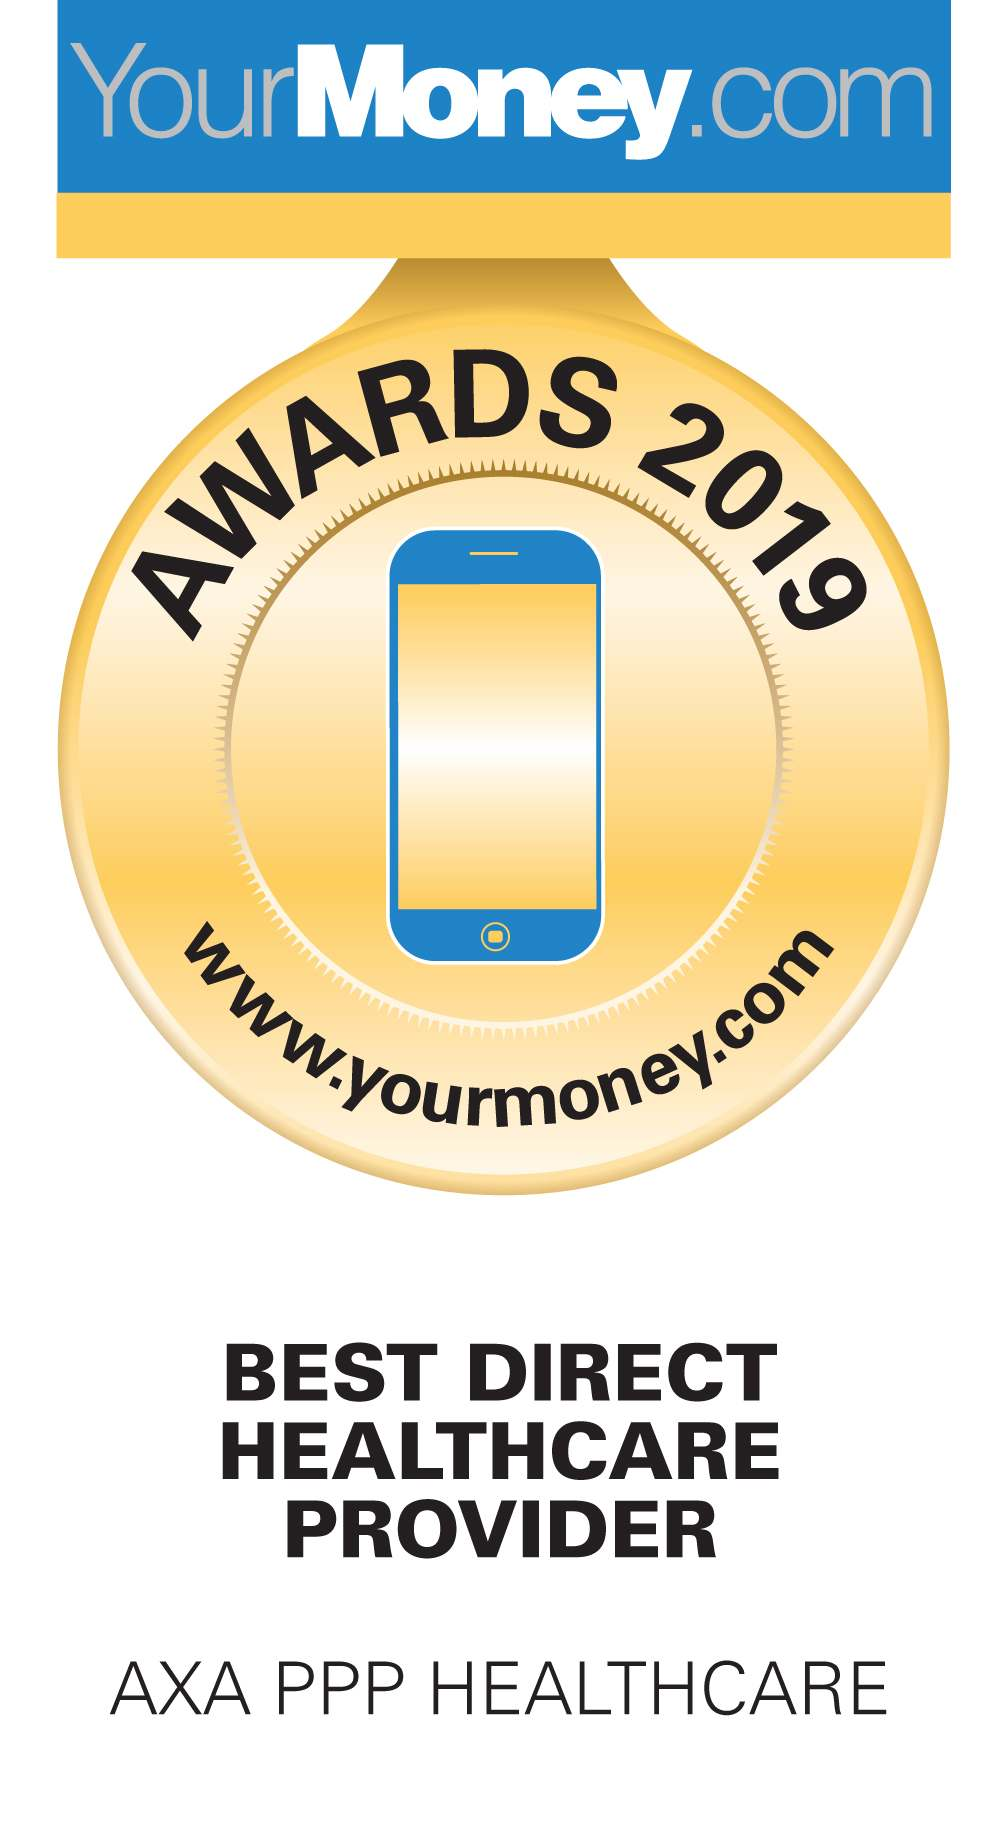 Awarded Best Direct Healthcare Provider by YourMoney.com, 2019